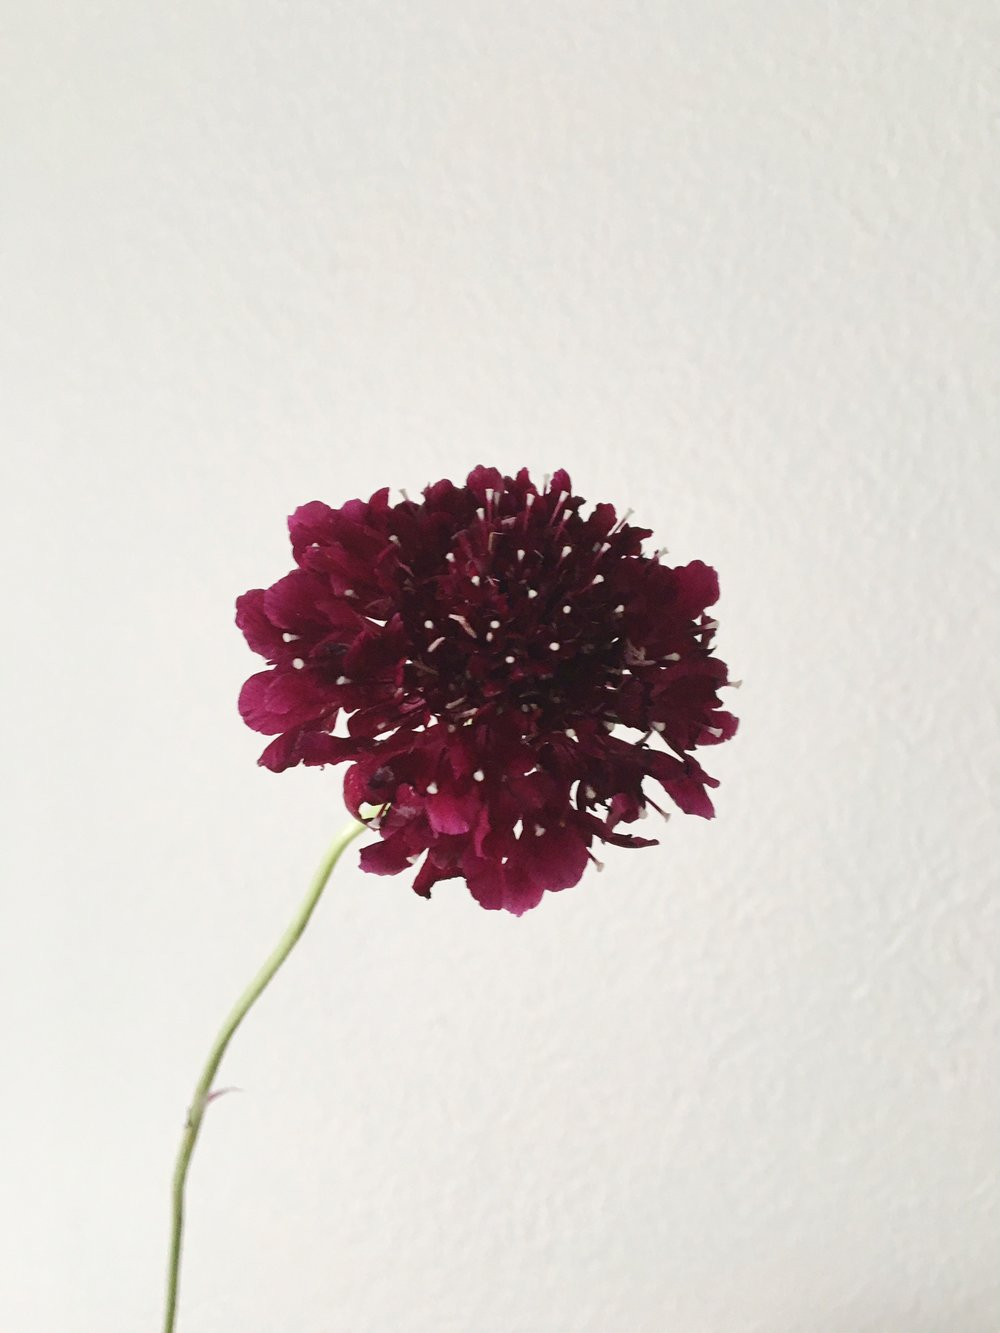 CHOCOLATE SCABIOSA